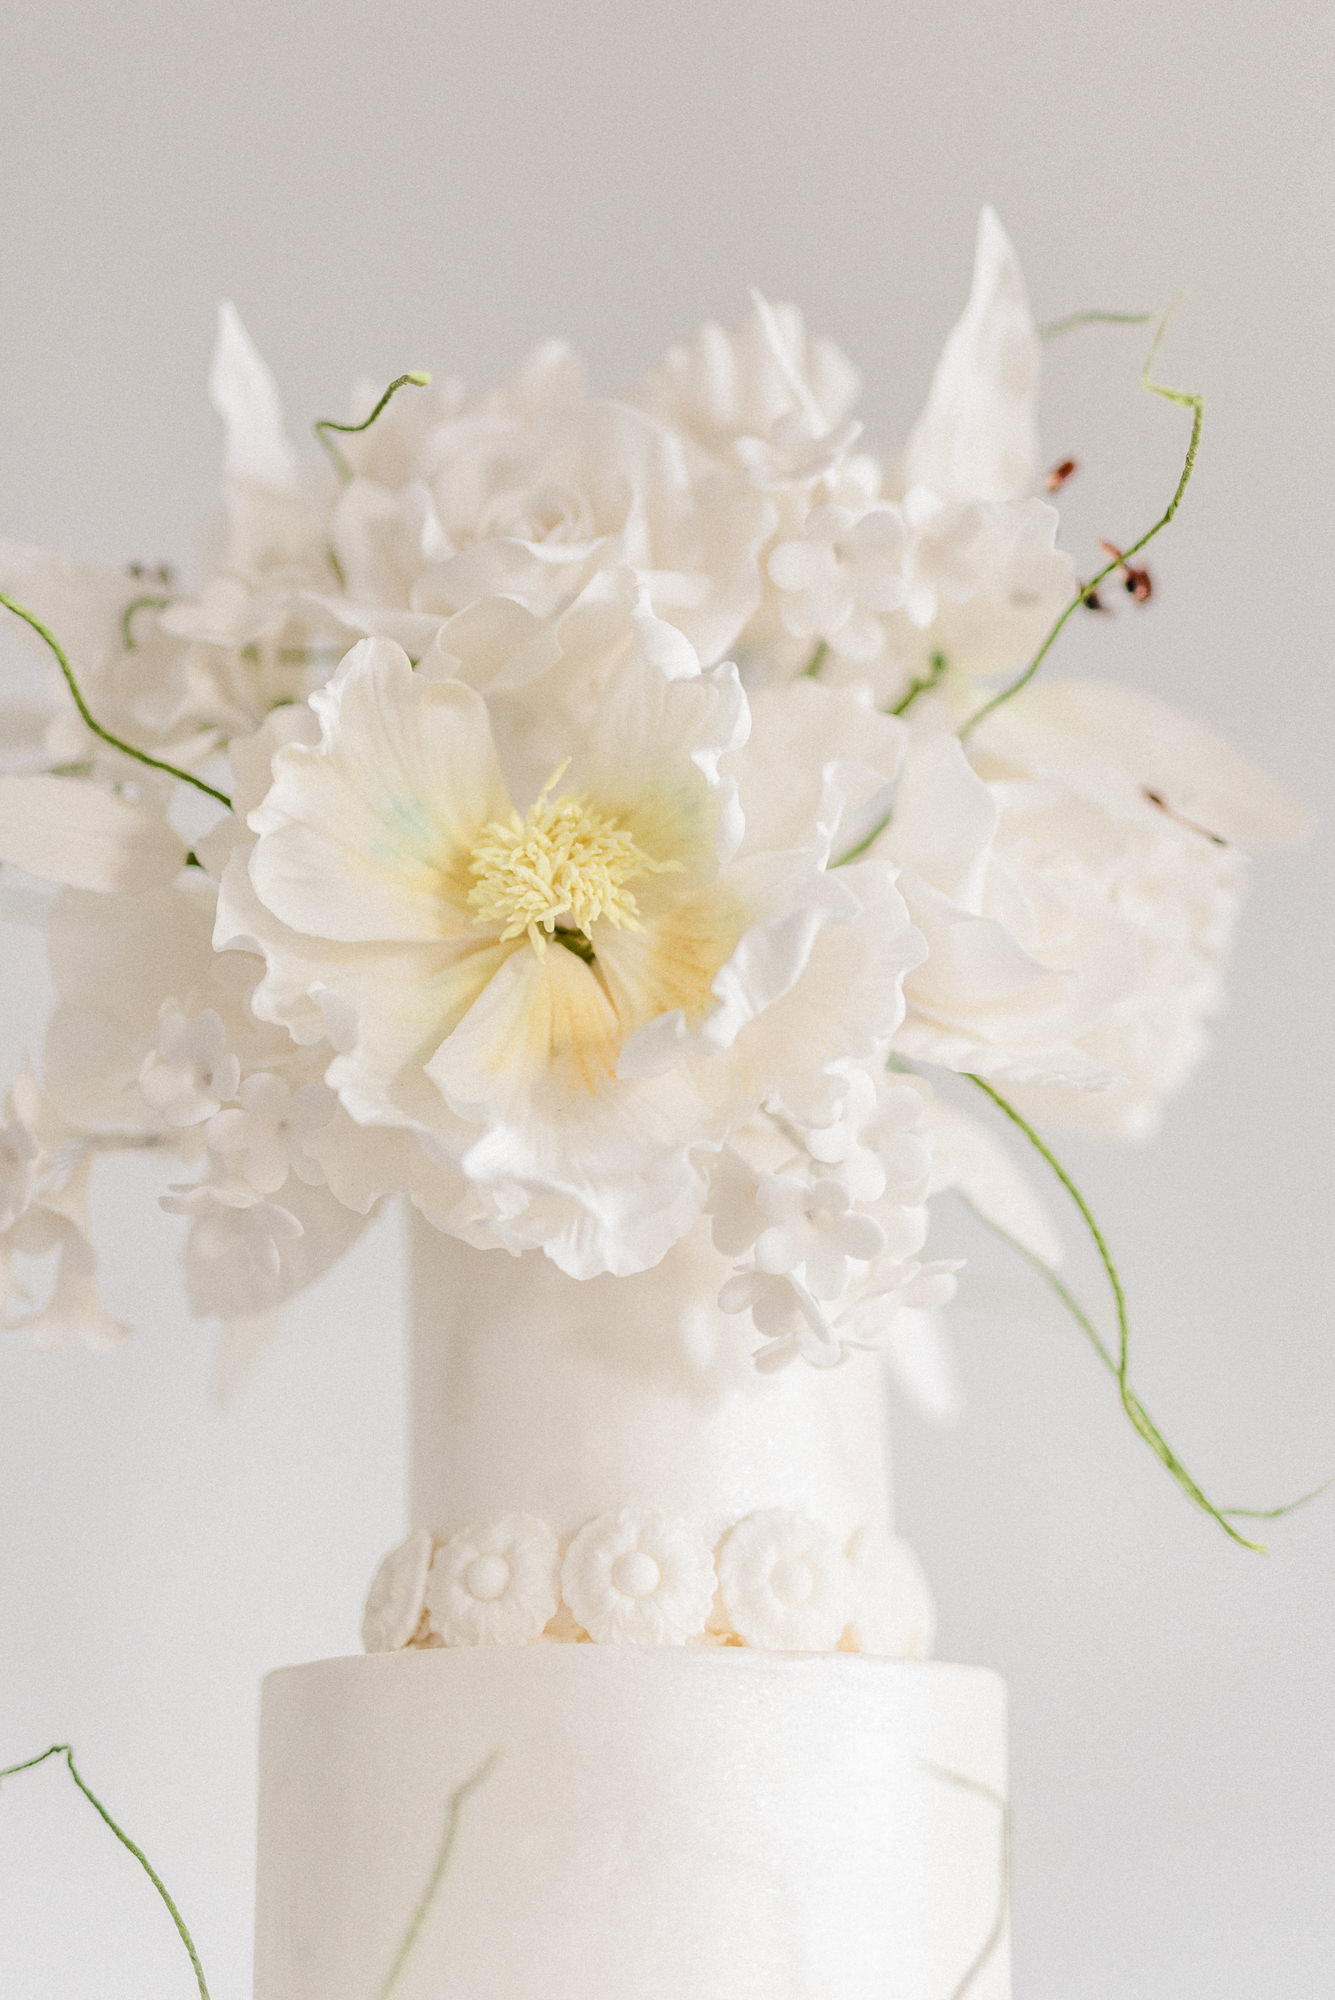 White peony cake topper - photo by Gianluca Adovasio Photography